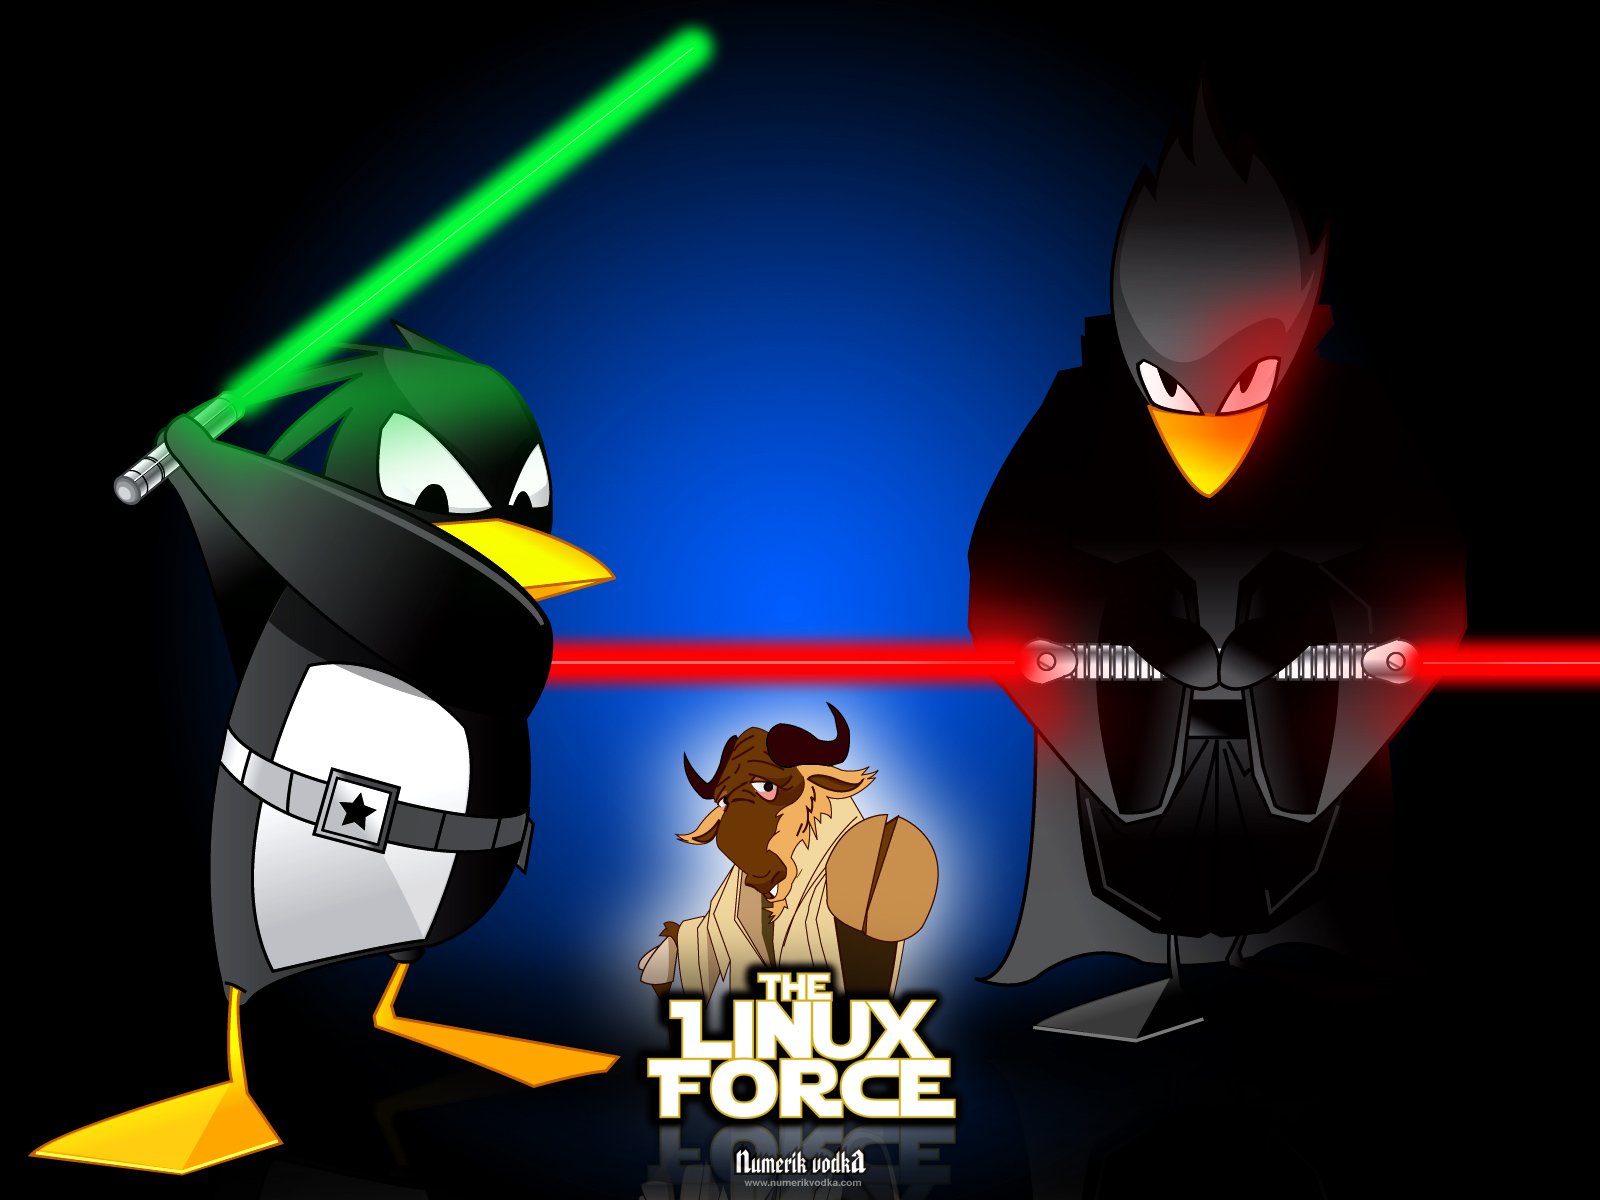 Fonds d'écran Informatique Linux The Linux Force III